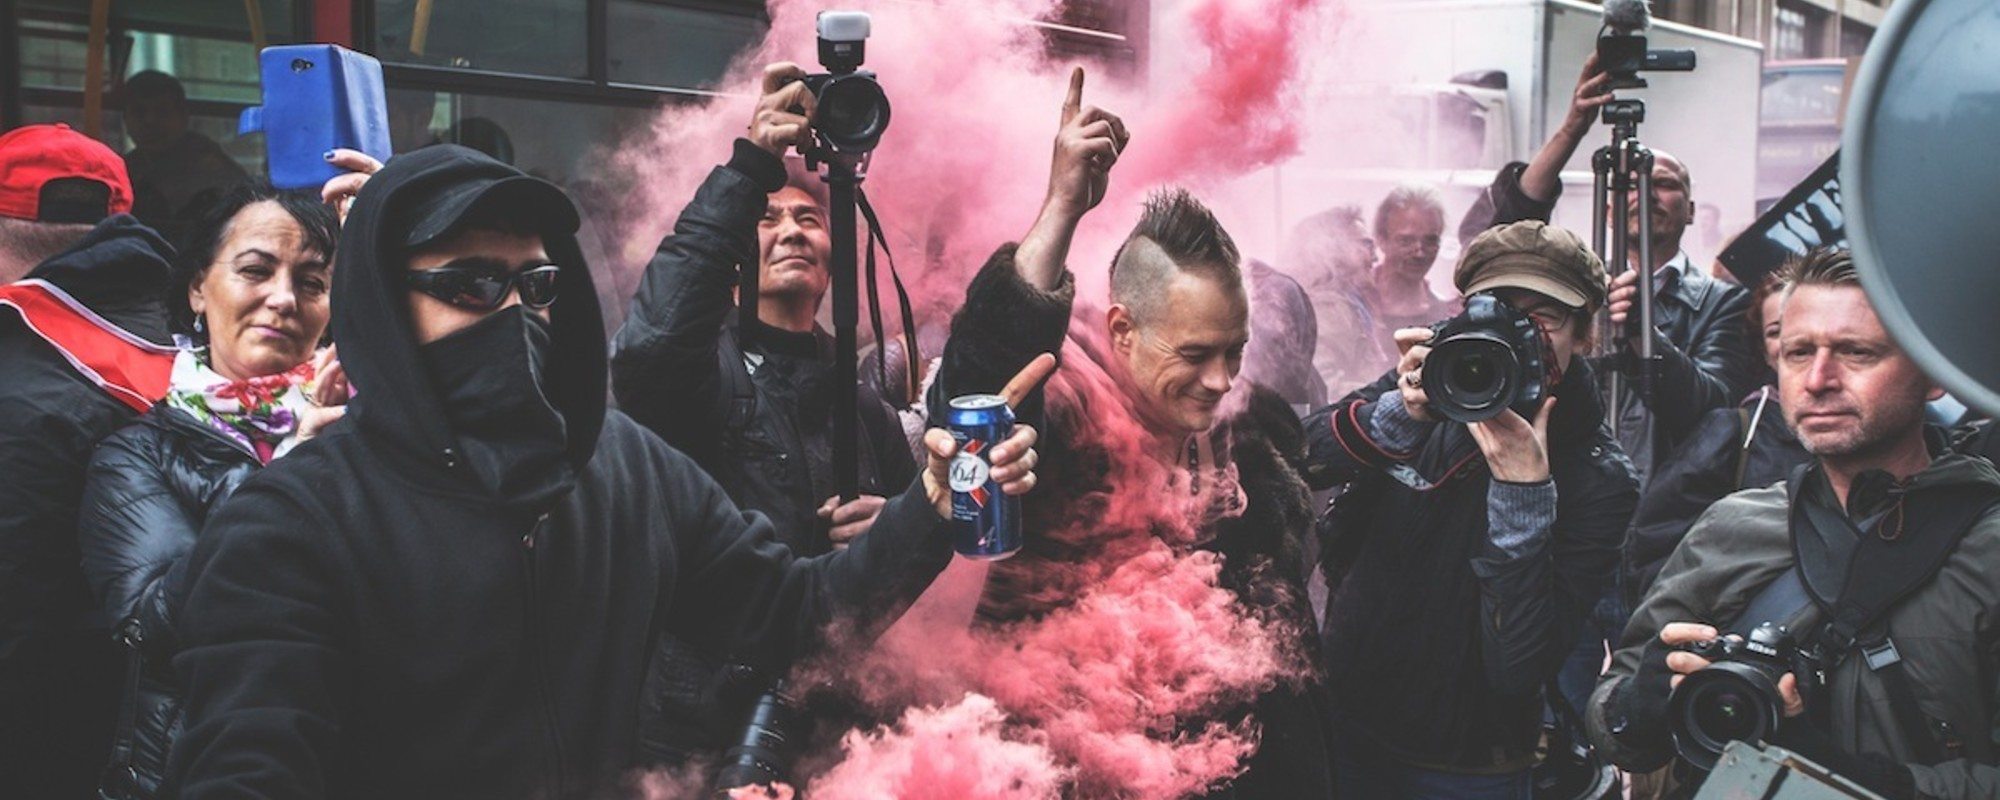 London's Anarchists Celebrated May Day By Holding a Riot-Party